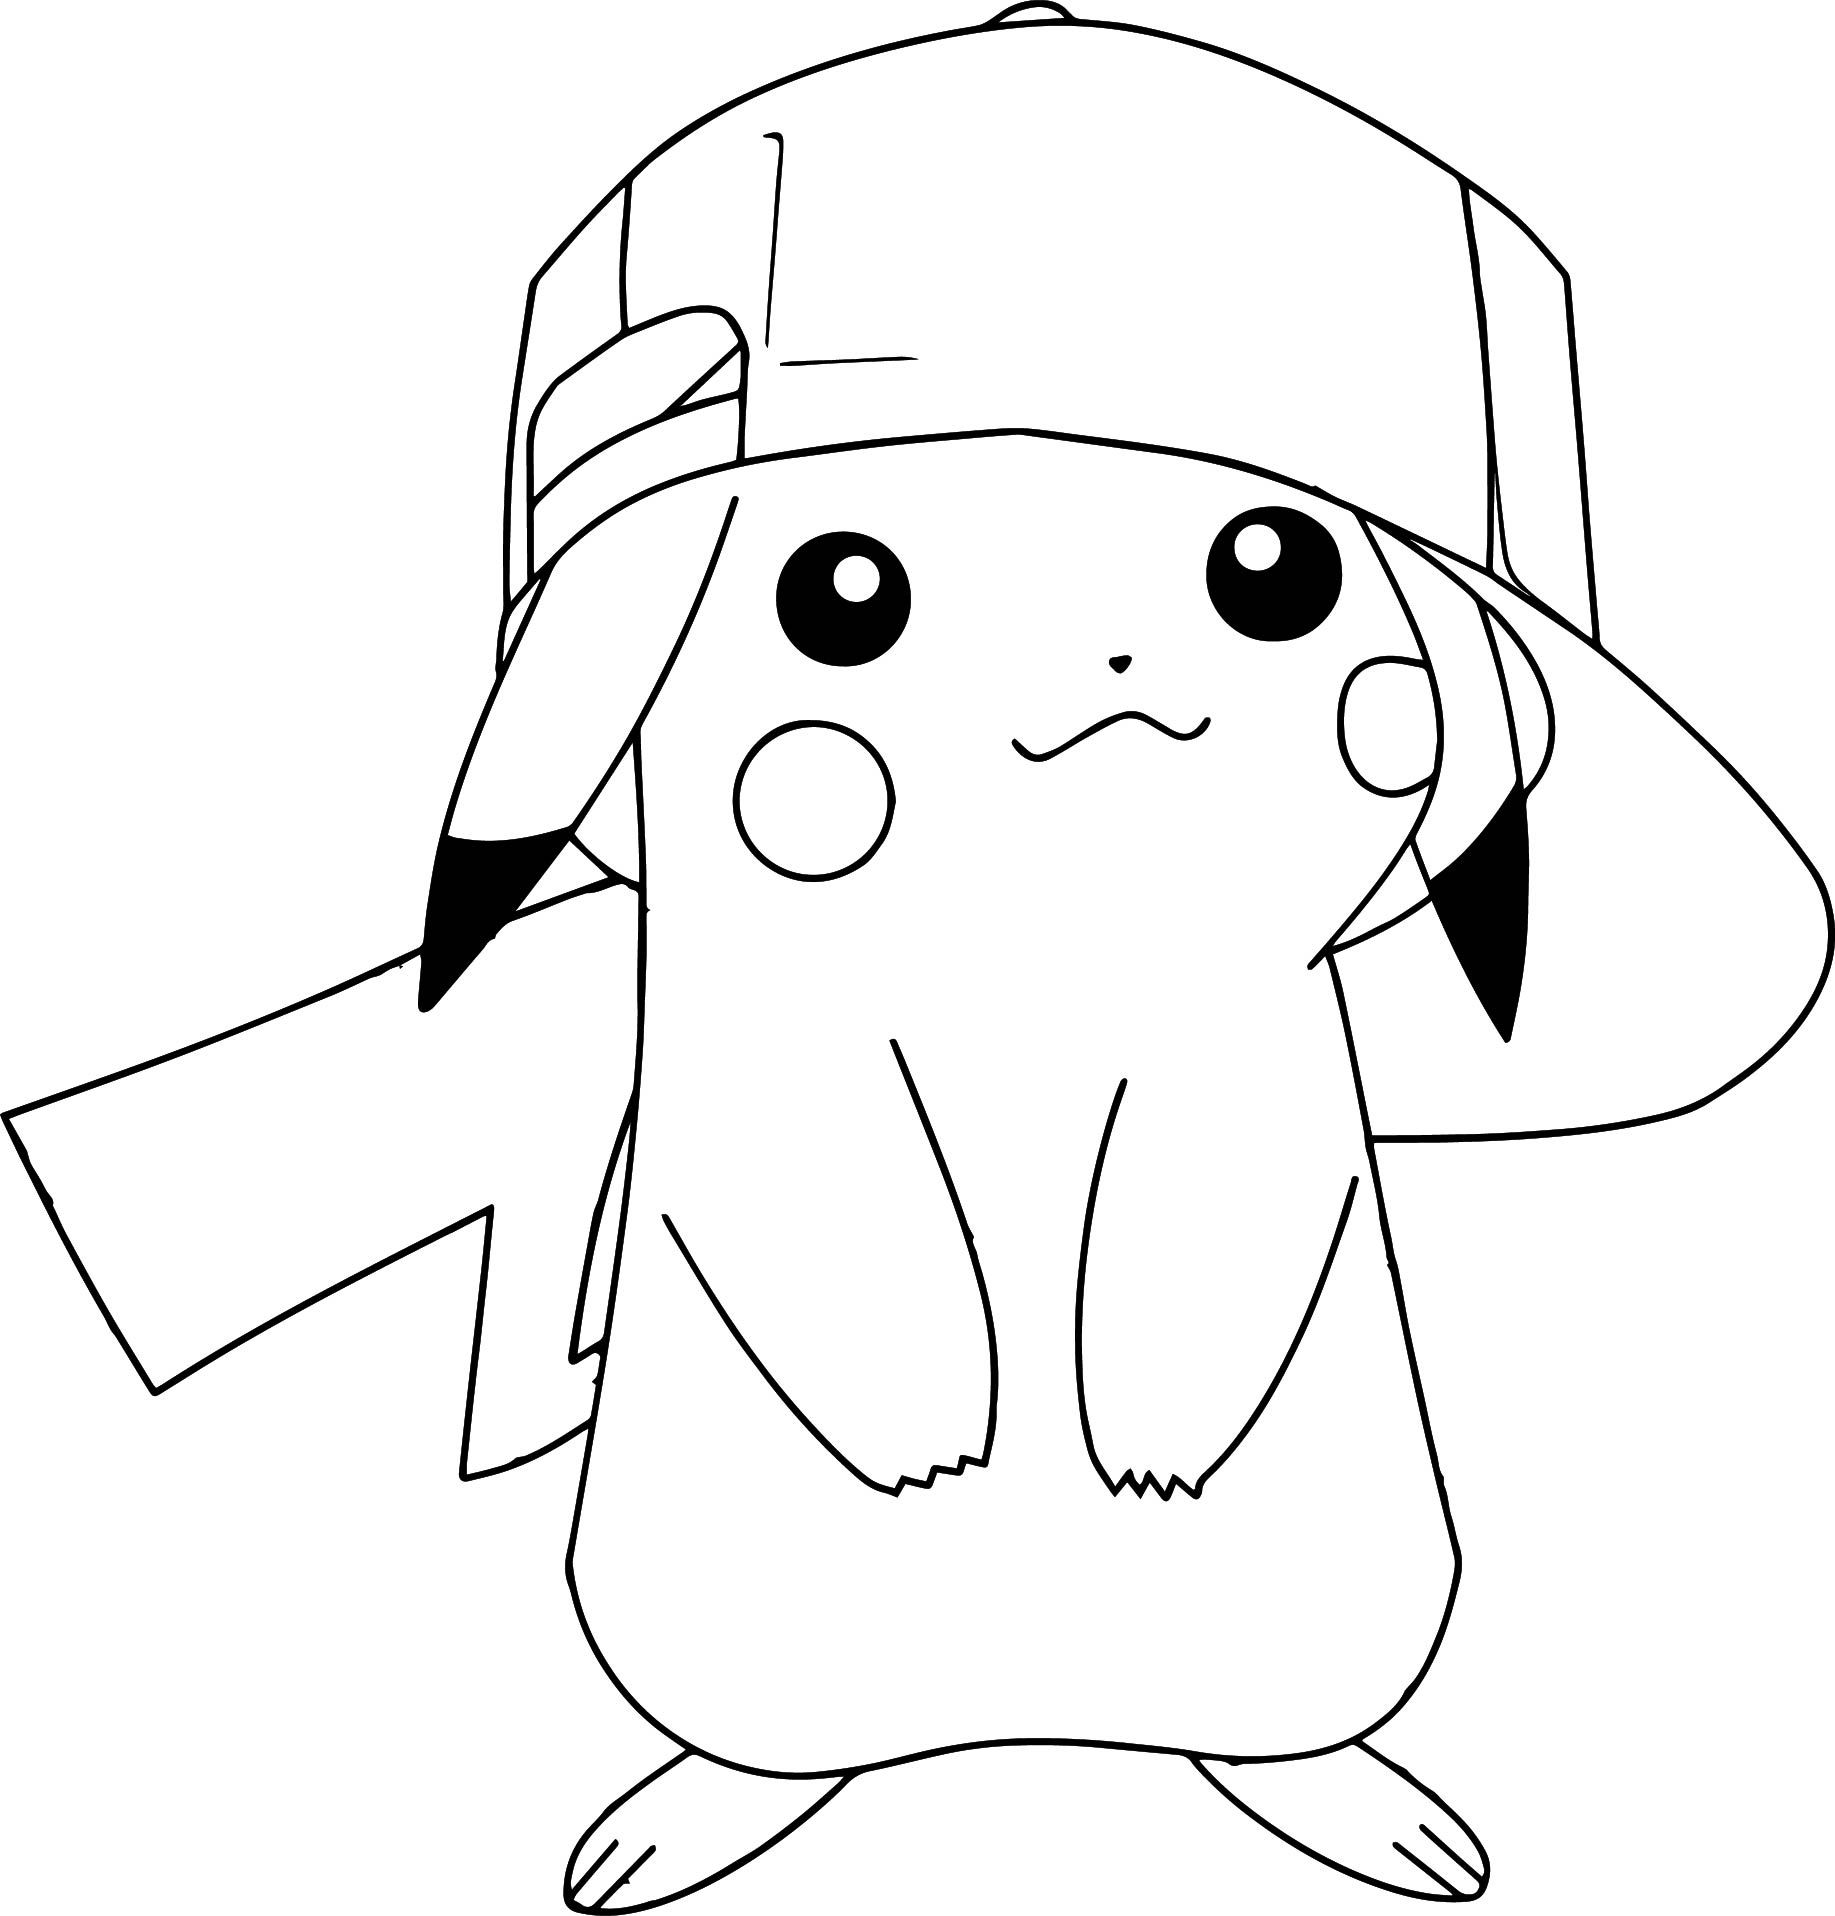 Pikachu coloring pages free printable - Pokemon Coloring Pages Pikachu Wearing Hat Coloringstar